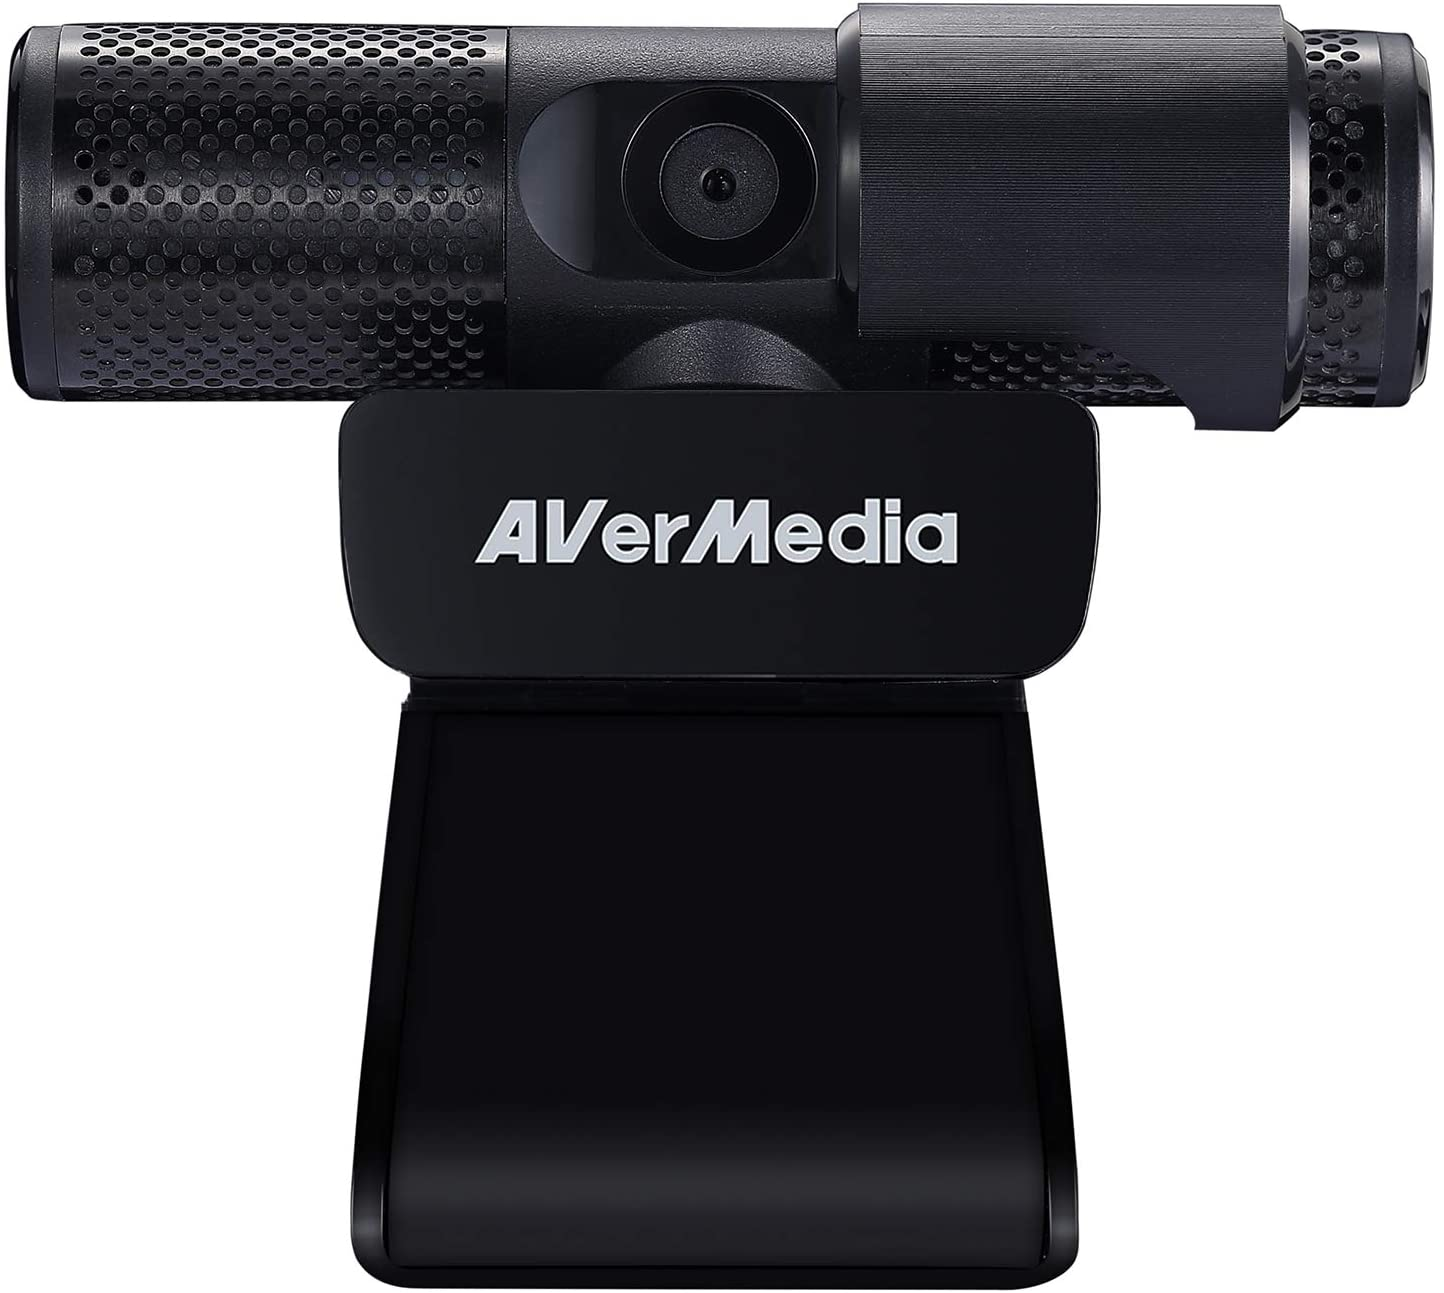 AVerMedia PW313 Live Streamer Camera